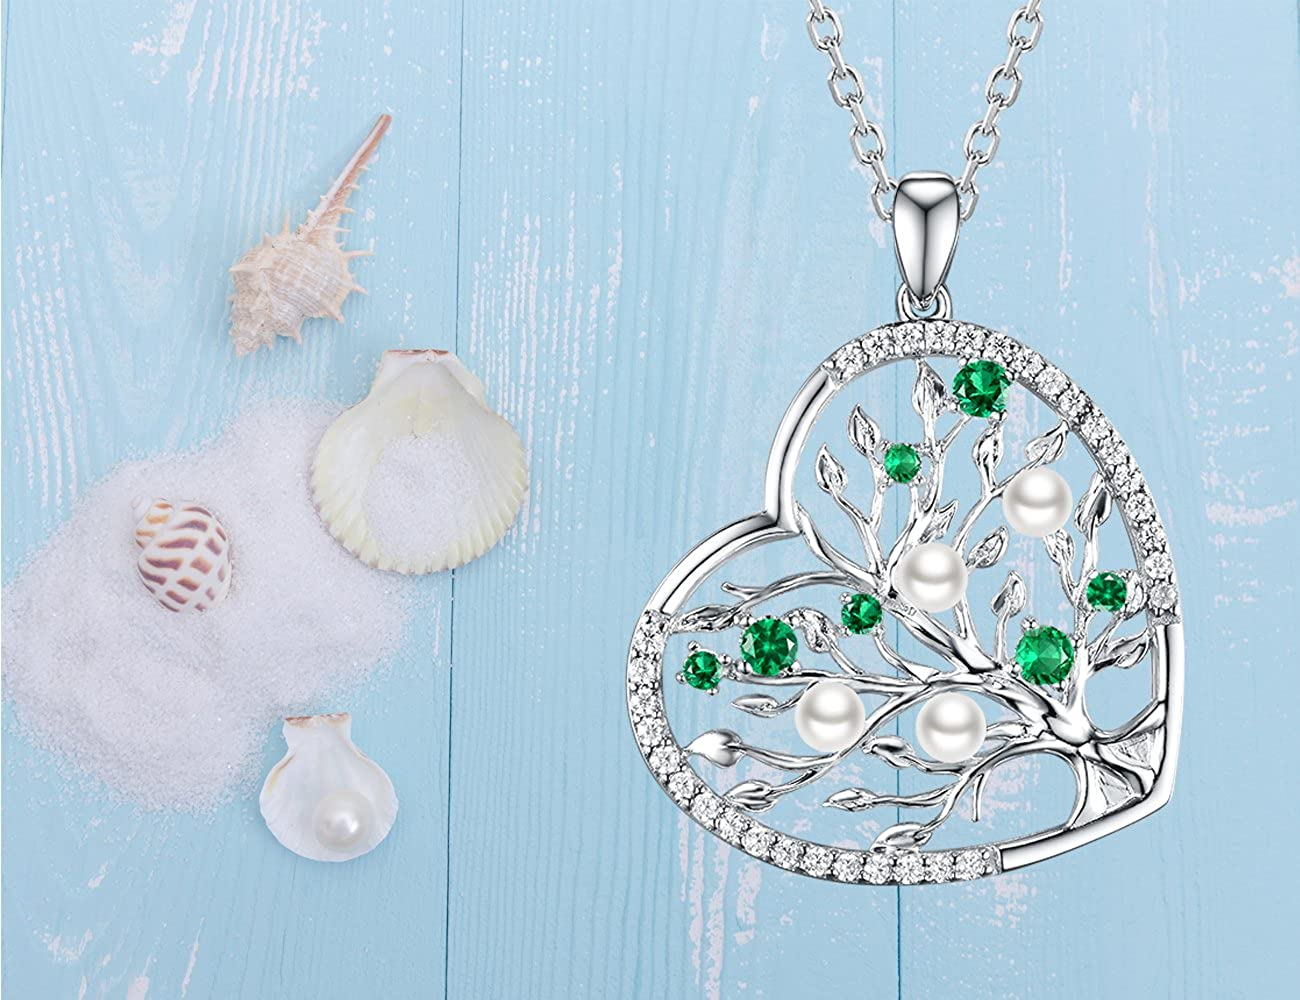 Re Besta June Birthstone White Pearl Necklace Tree of Life LC Green Emerald Sterling Silver Jewelry Birthday Gifts for Women